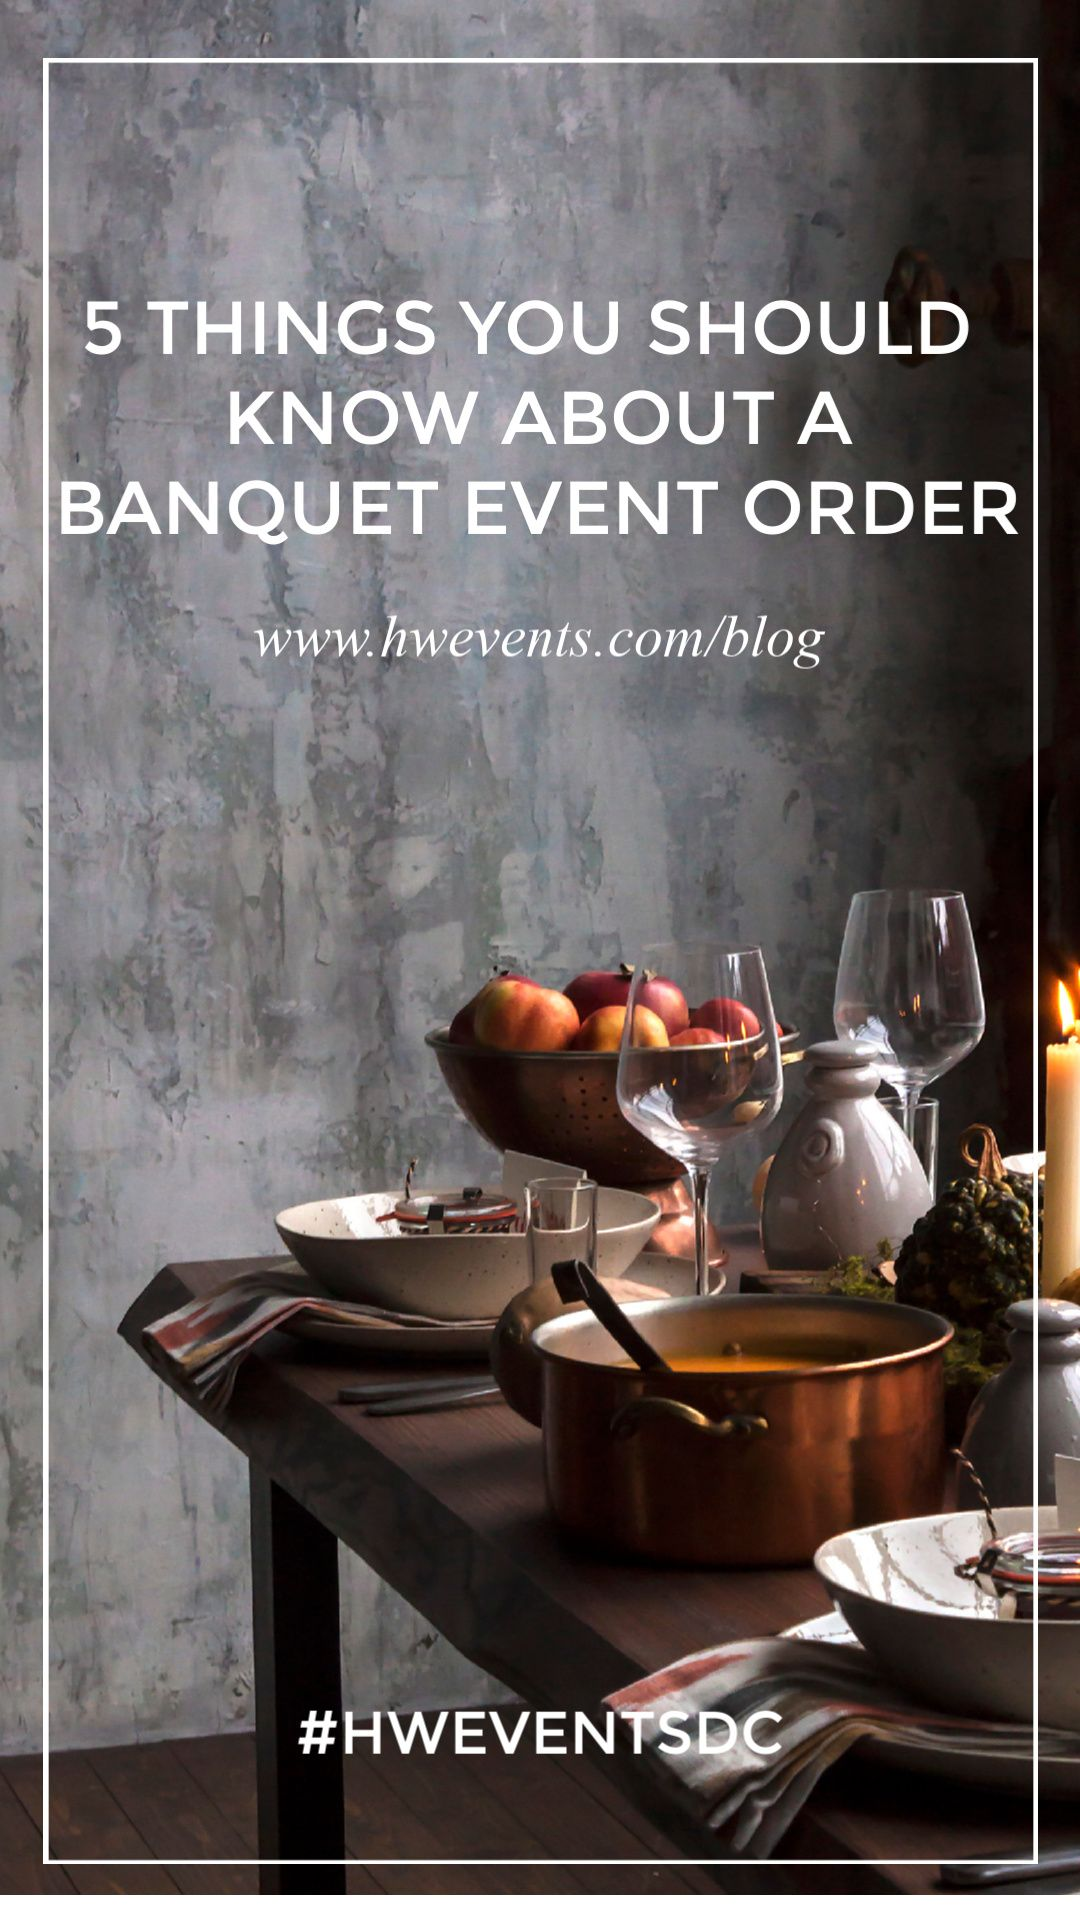 5 things you should know about a banquet event order